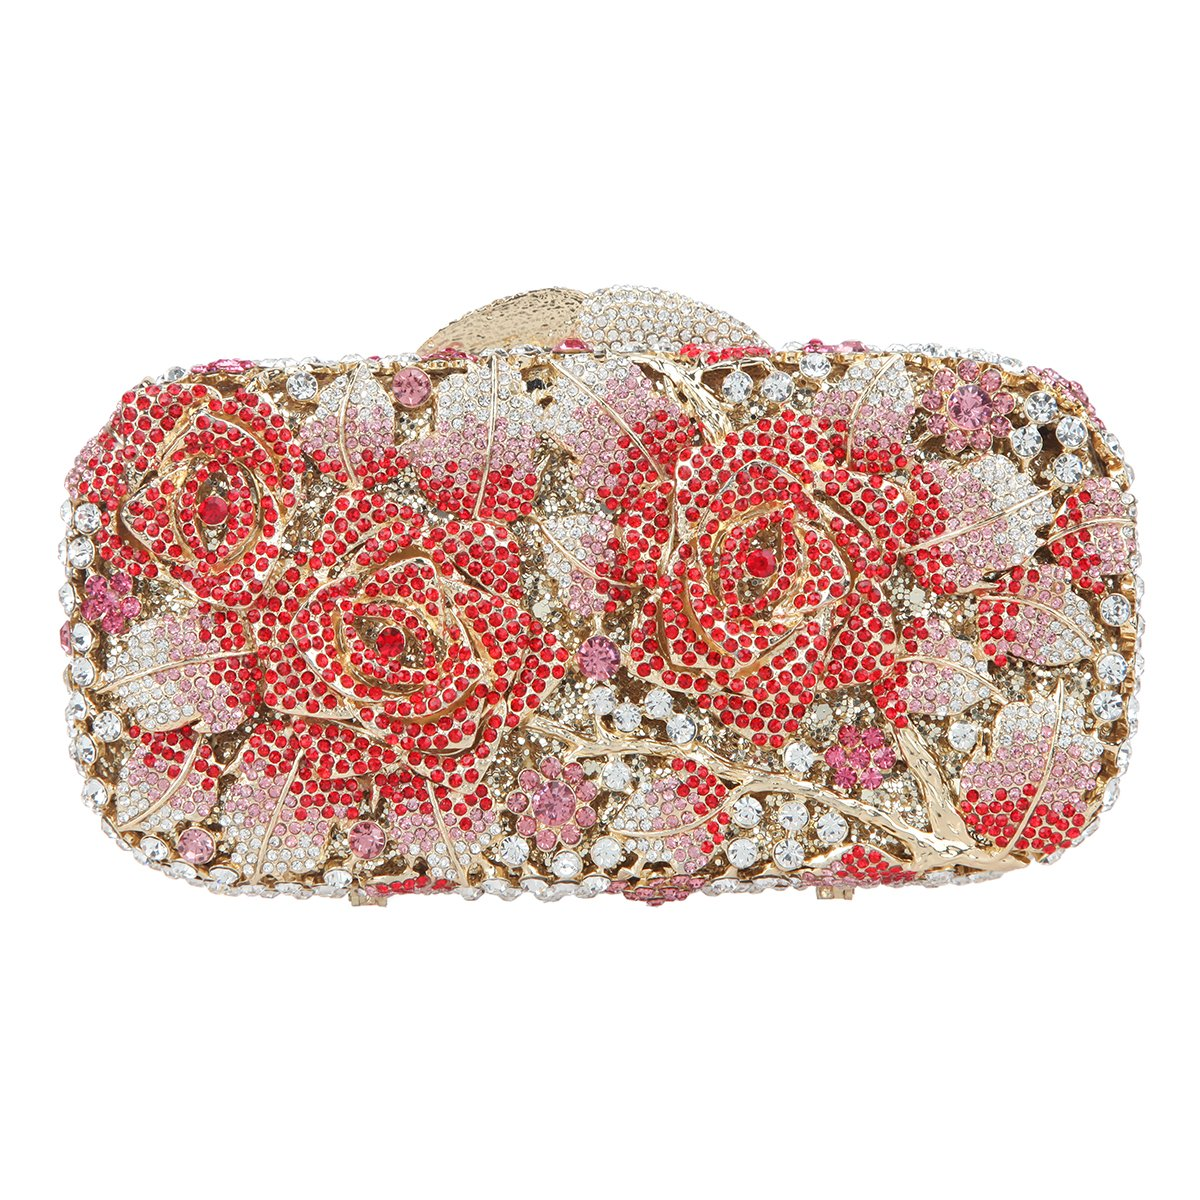 Bonjanvye Glitter Floral Clutch Purse for Girls Crystal Rhinestone Handbag UK50903AB Gold